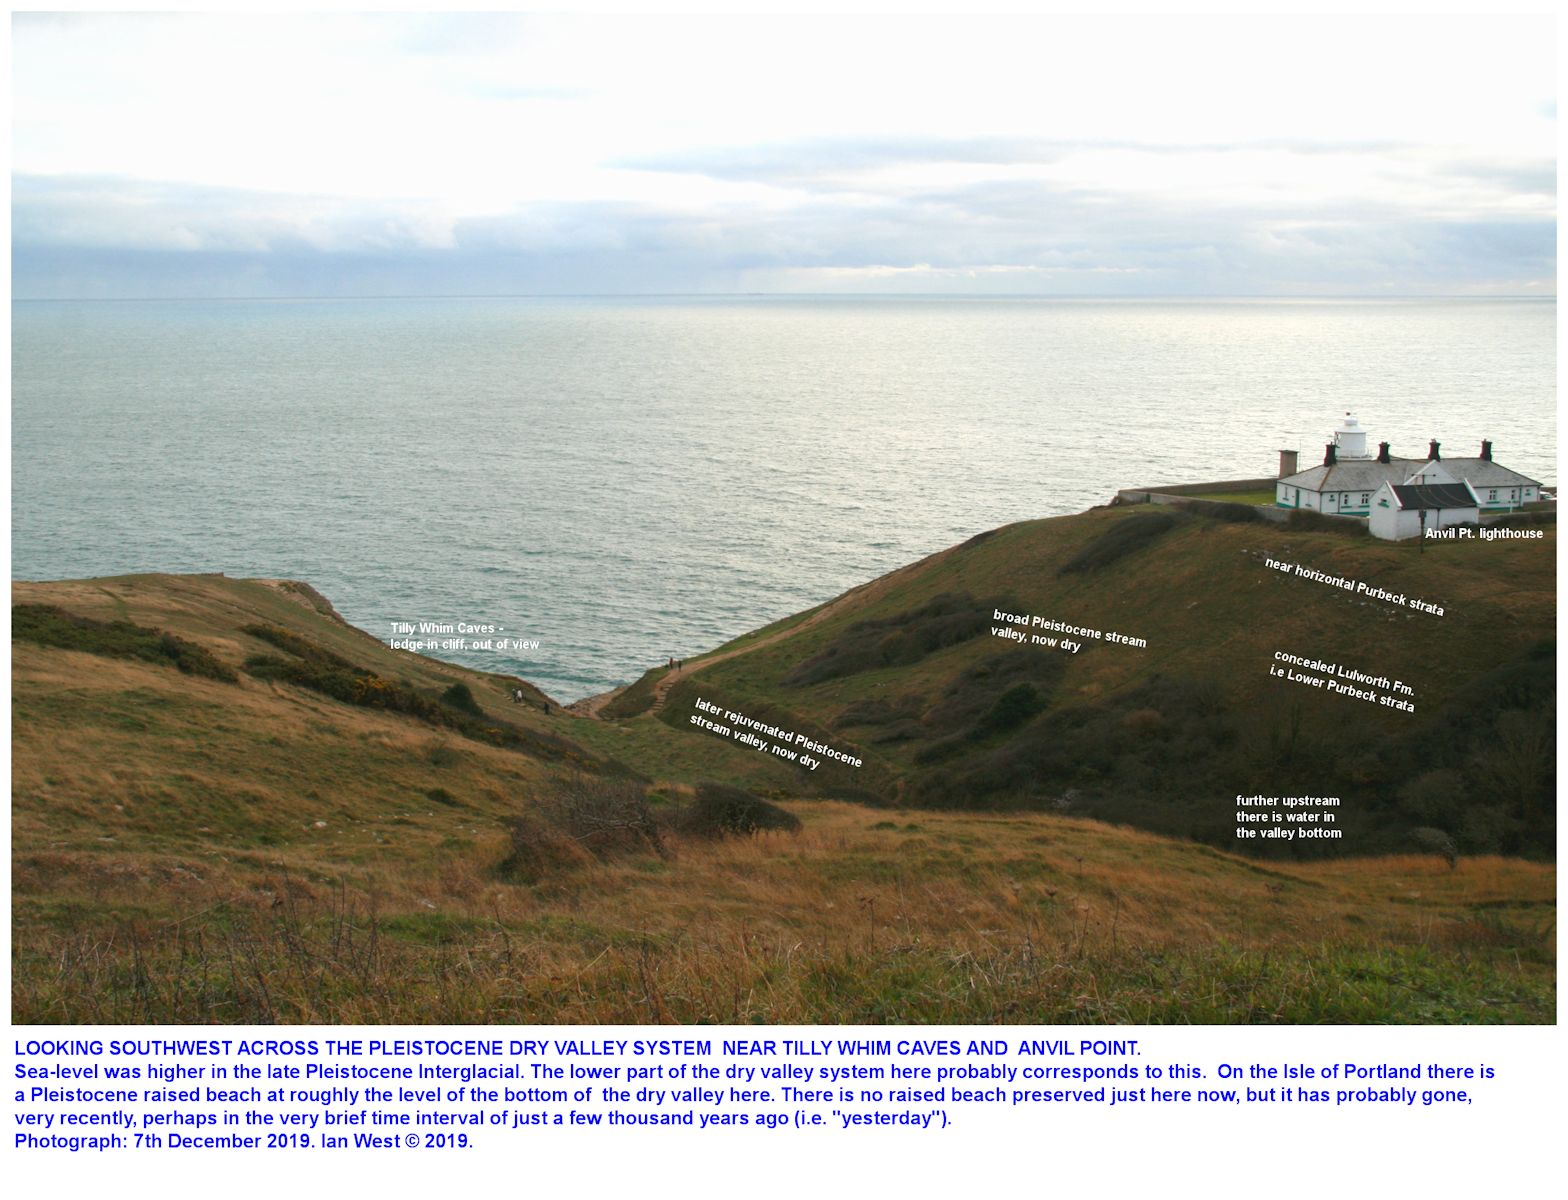 Labelled version of the dry valleys near Tilly Whim Caves and the Anvil Point lighthouse, as seen from the narrow road heading back to Durlston Head, stormy weather, 18th October 2019, Ian West